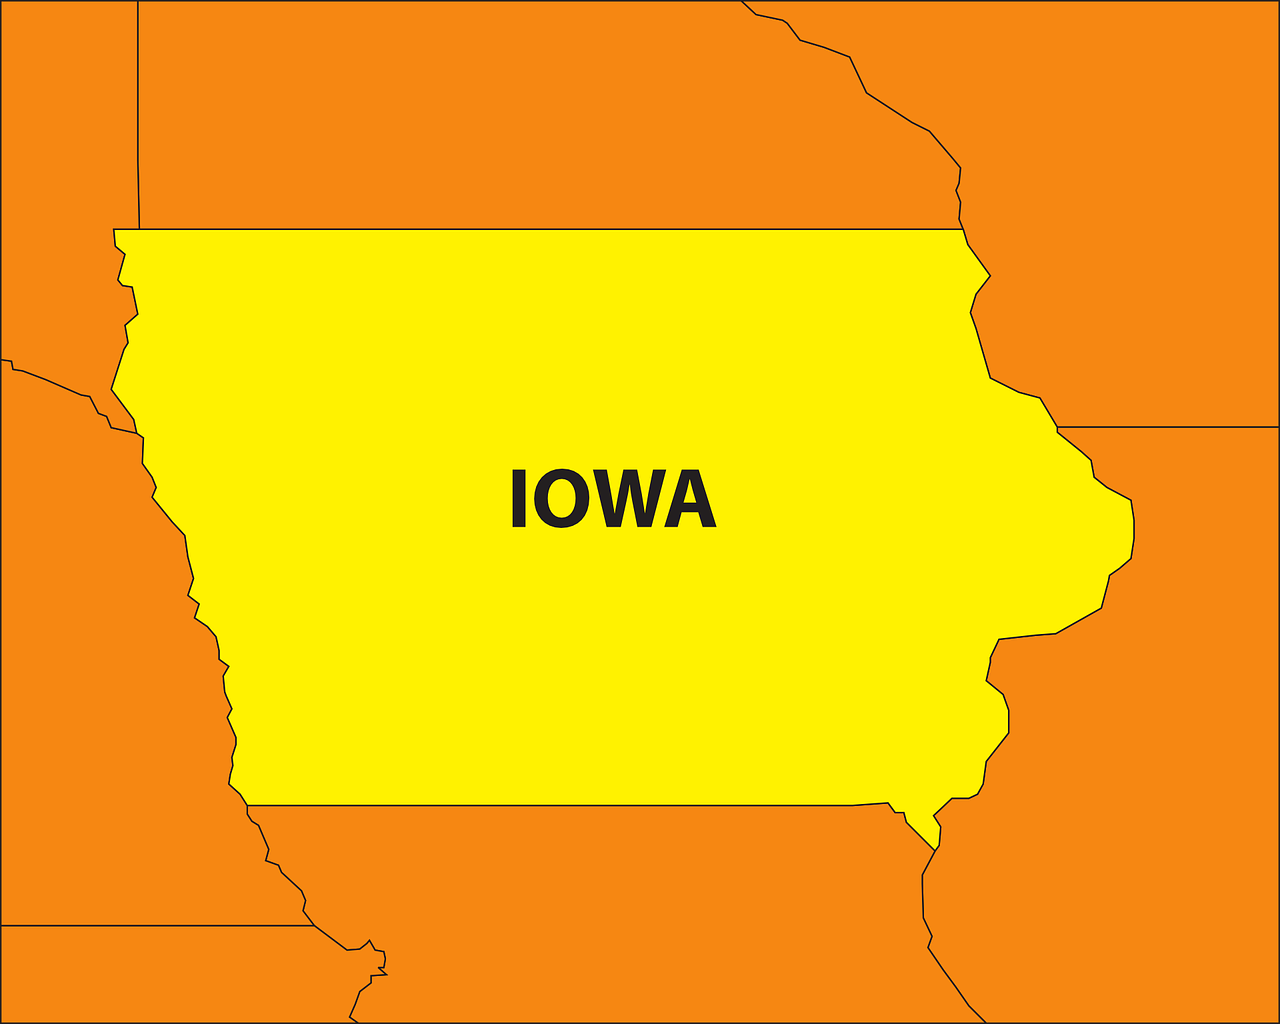 Iowa    MHA Indy: 317-251-7575    Contact Help: 765-608-5400    Centerstone Crisis Hotline: 800-832-5442